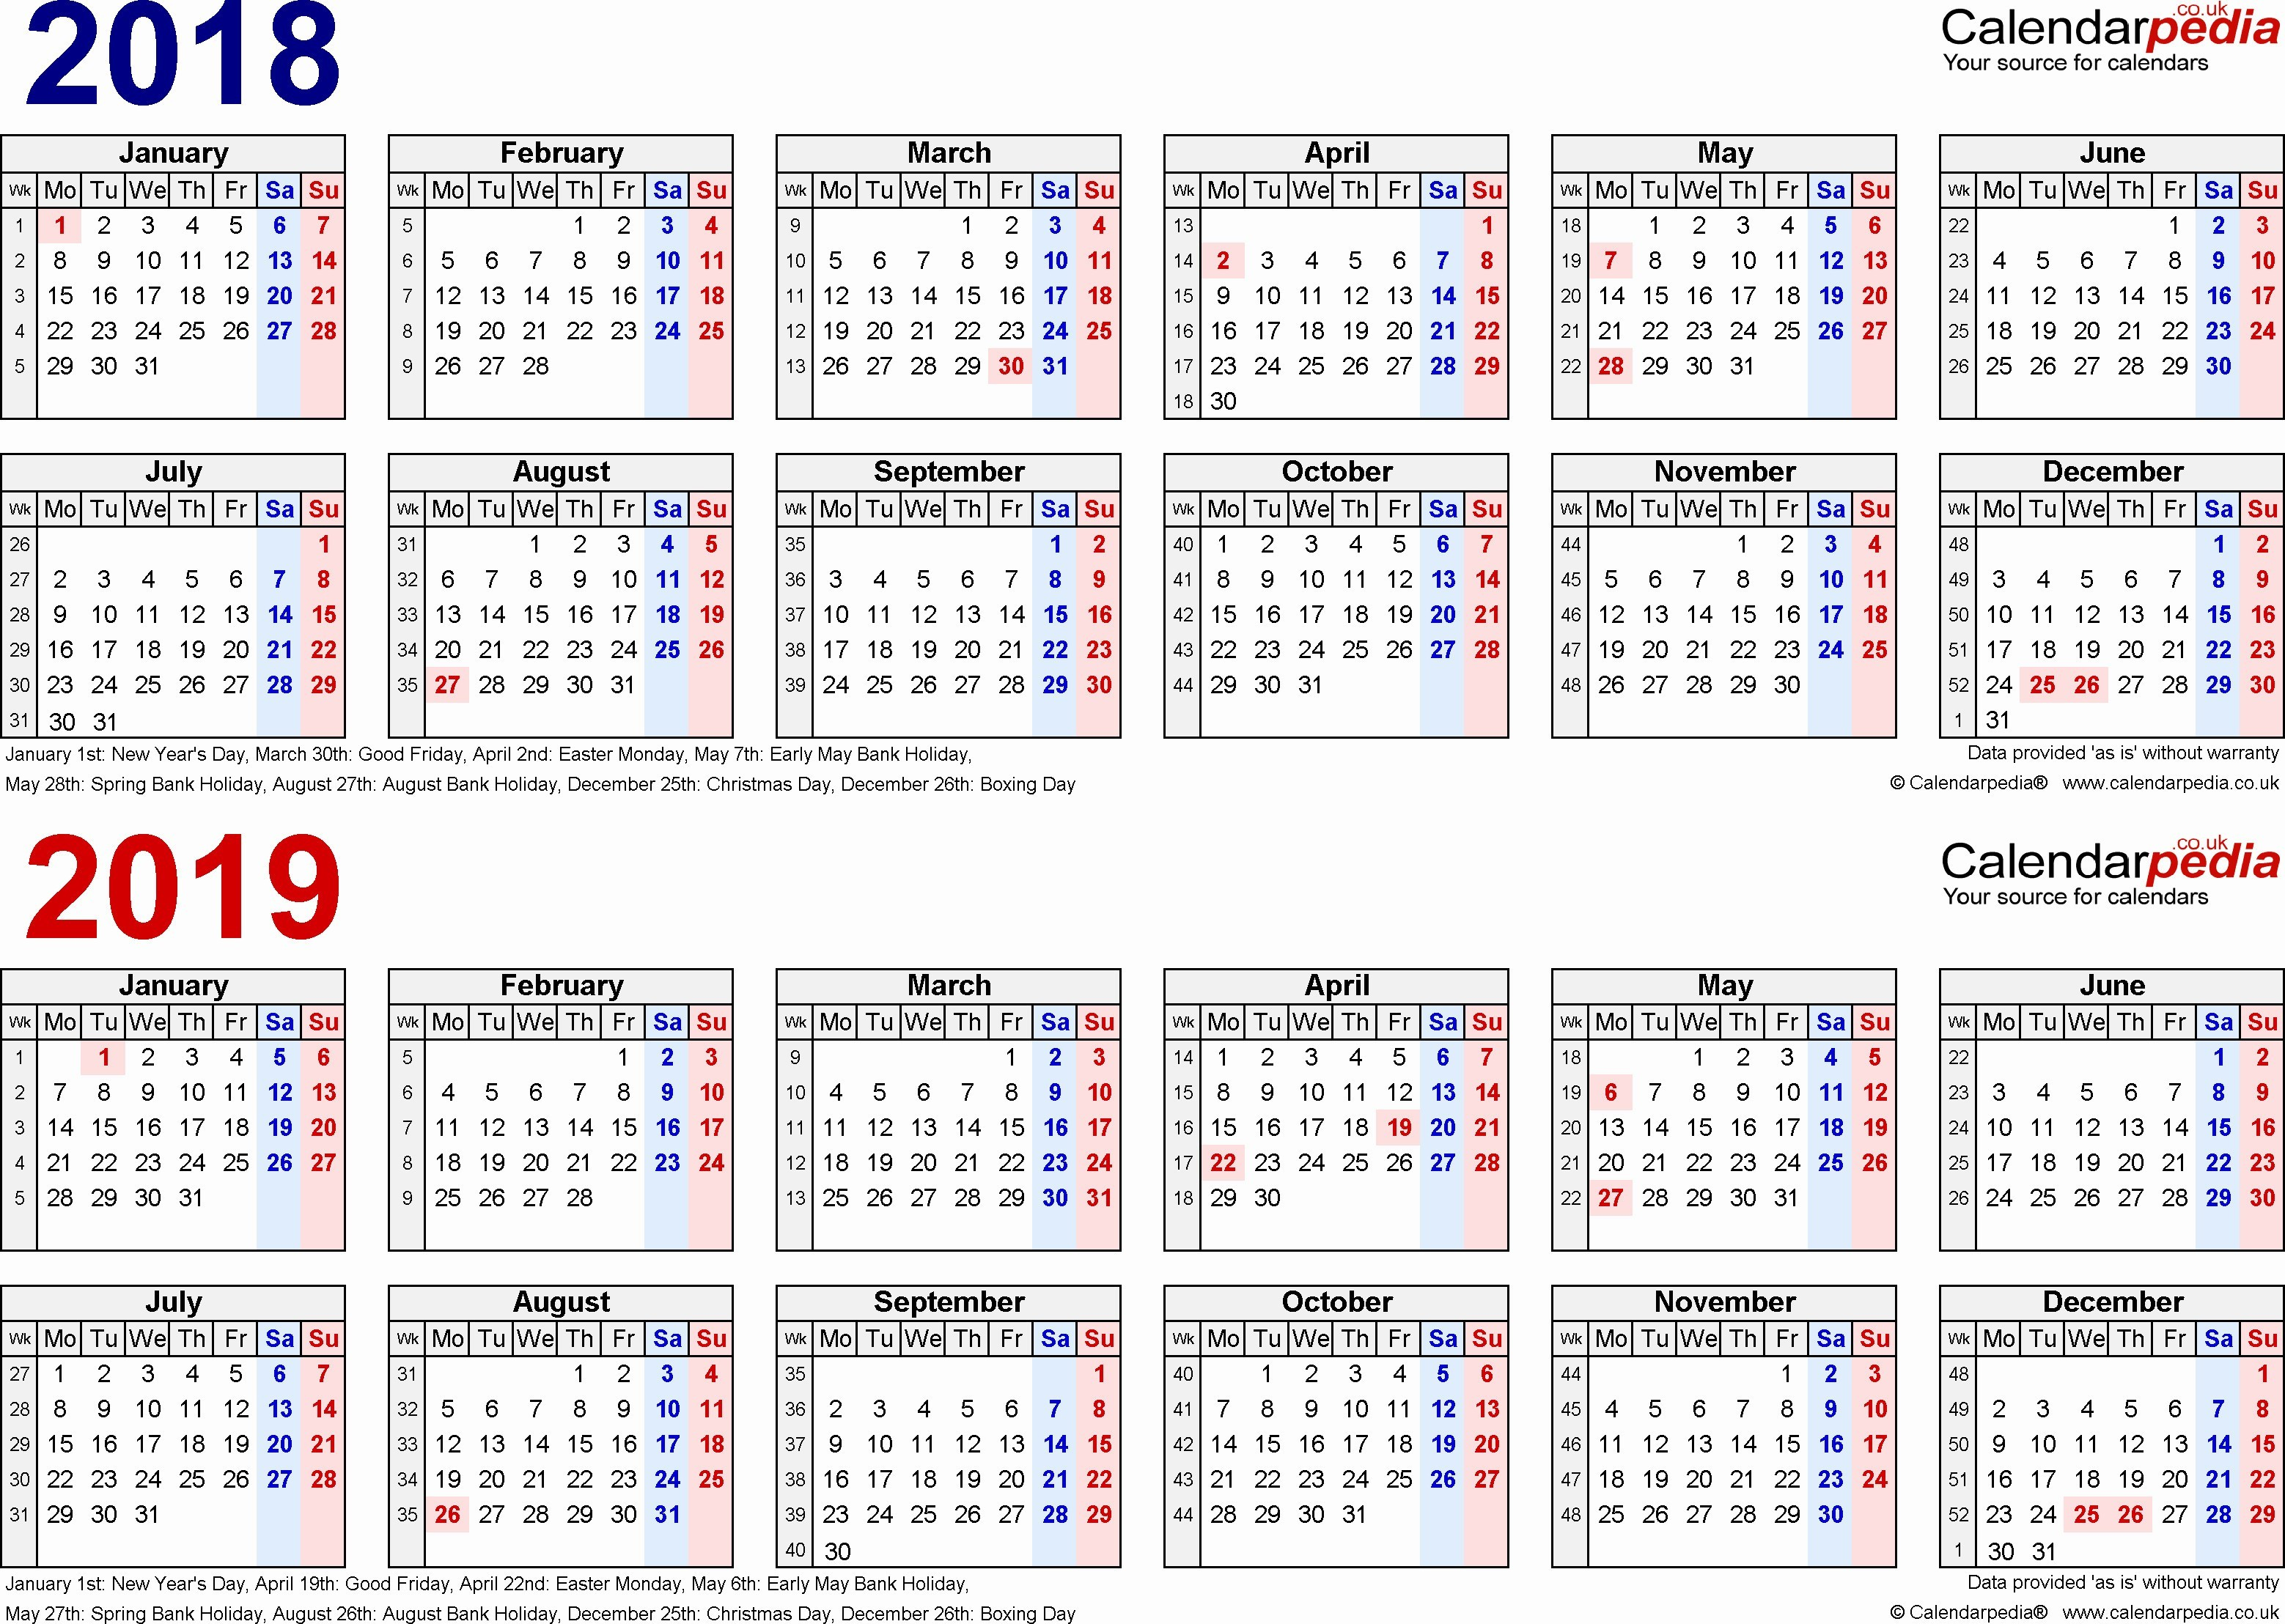 The Right Situation An Calendar 2019 Printable with School Holidays 2017 and 2018 Calendar Printable